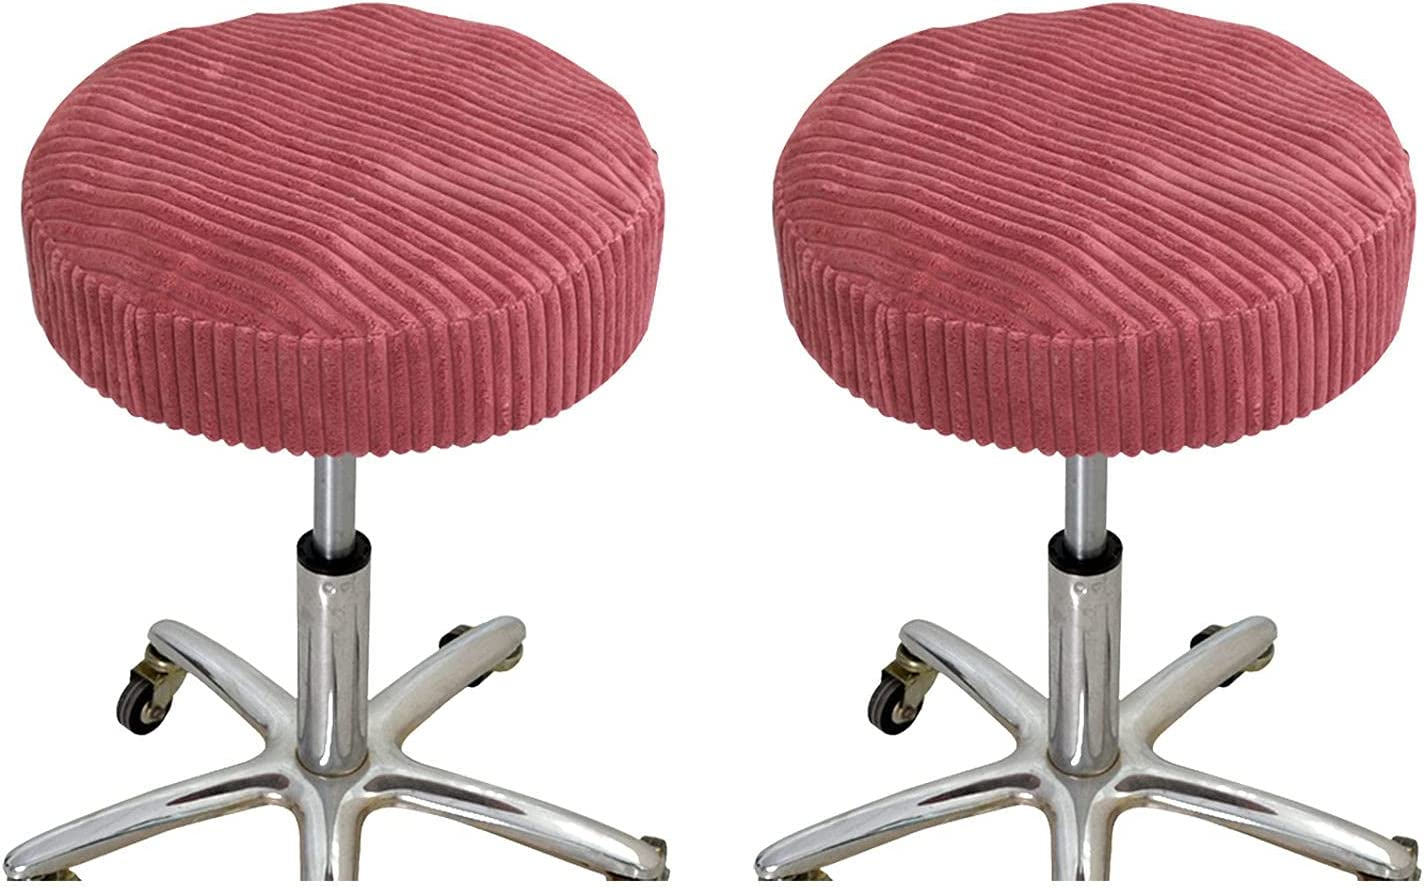 Stretch Bar Stools Seat Cover Max 60% OFF Barstool New product Cushion Round Slipcovers